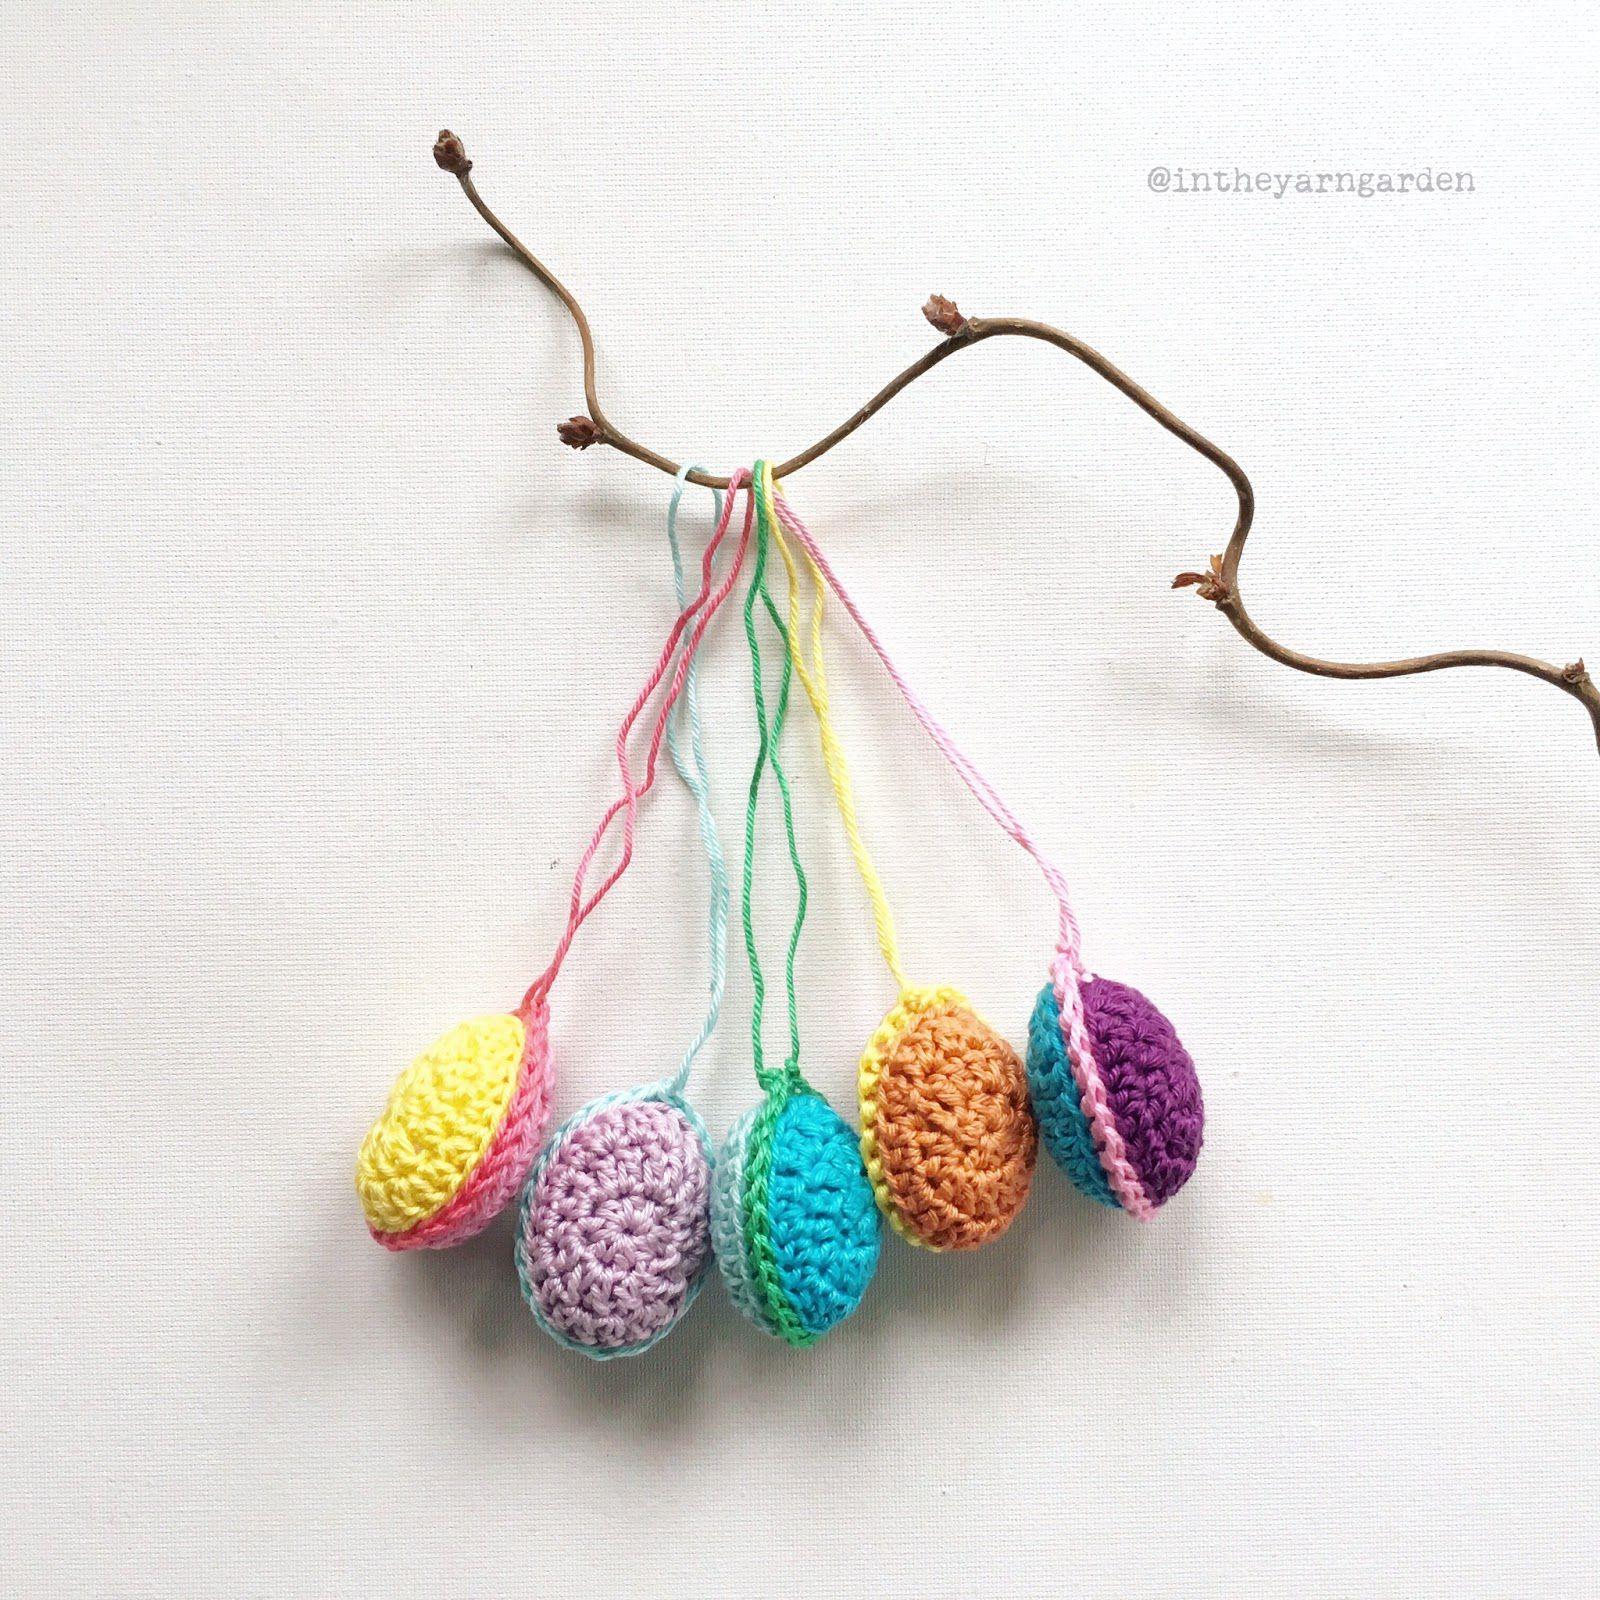 15 easter egg crochet patterns